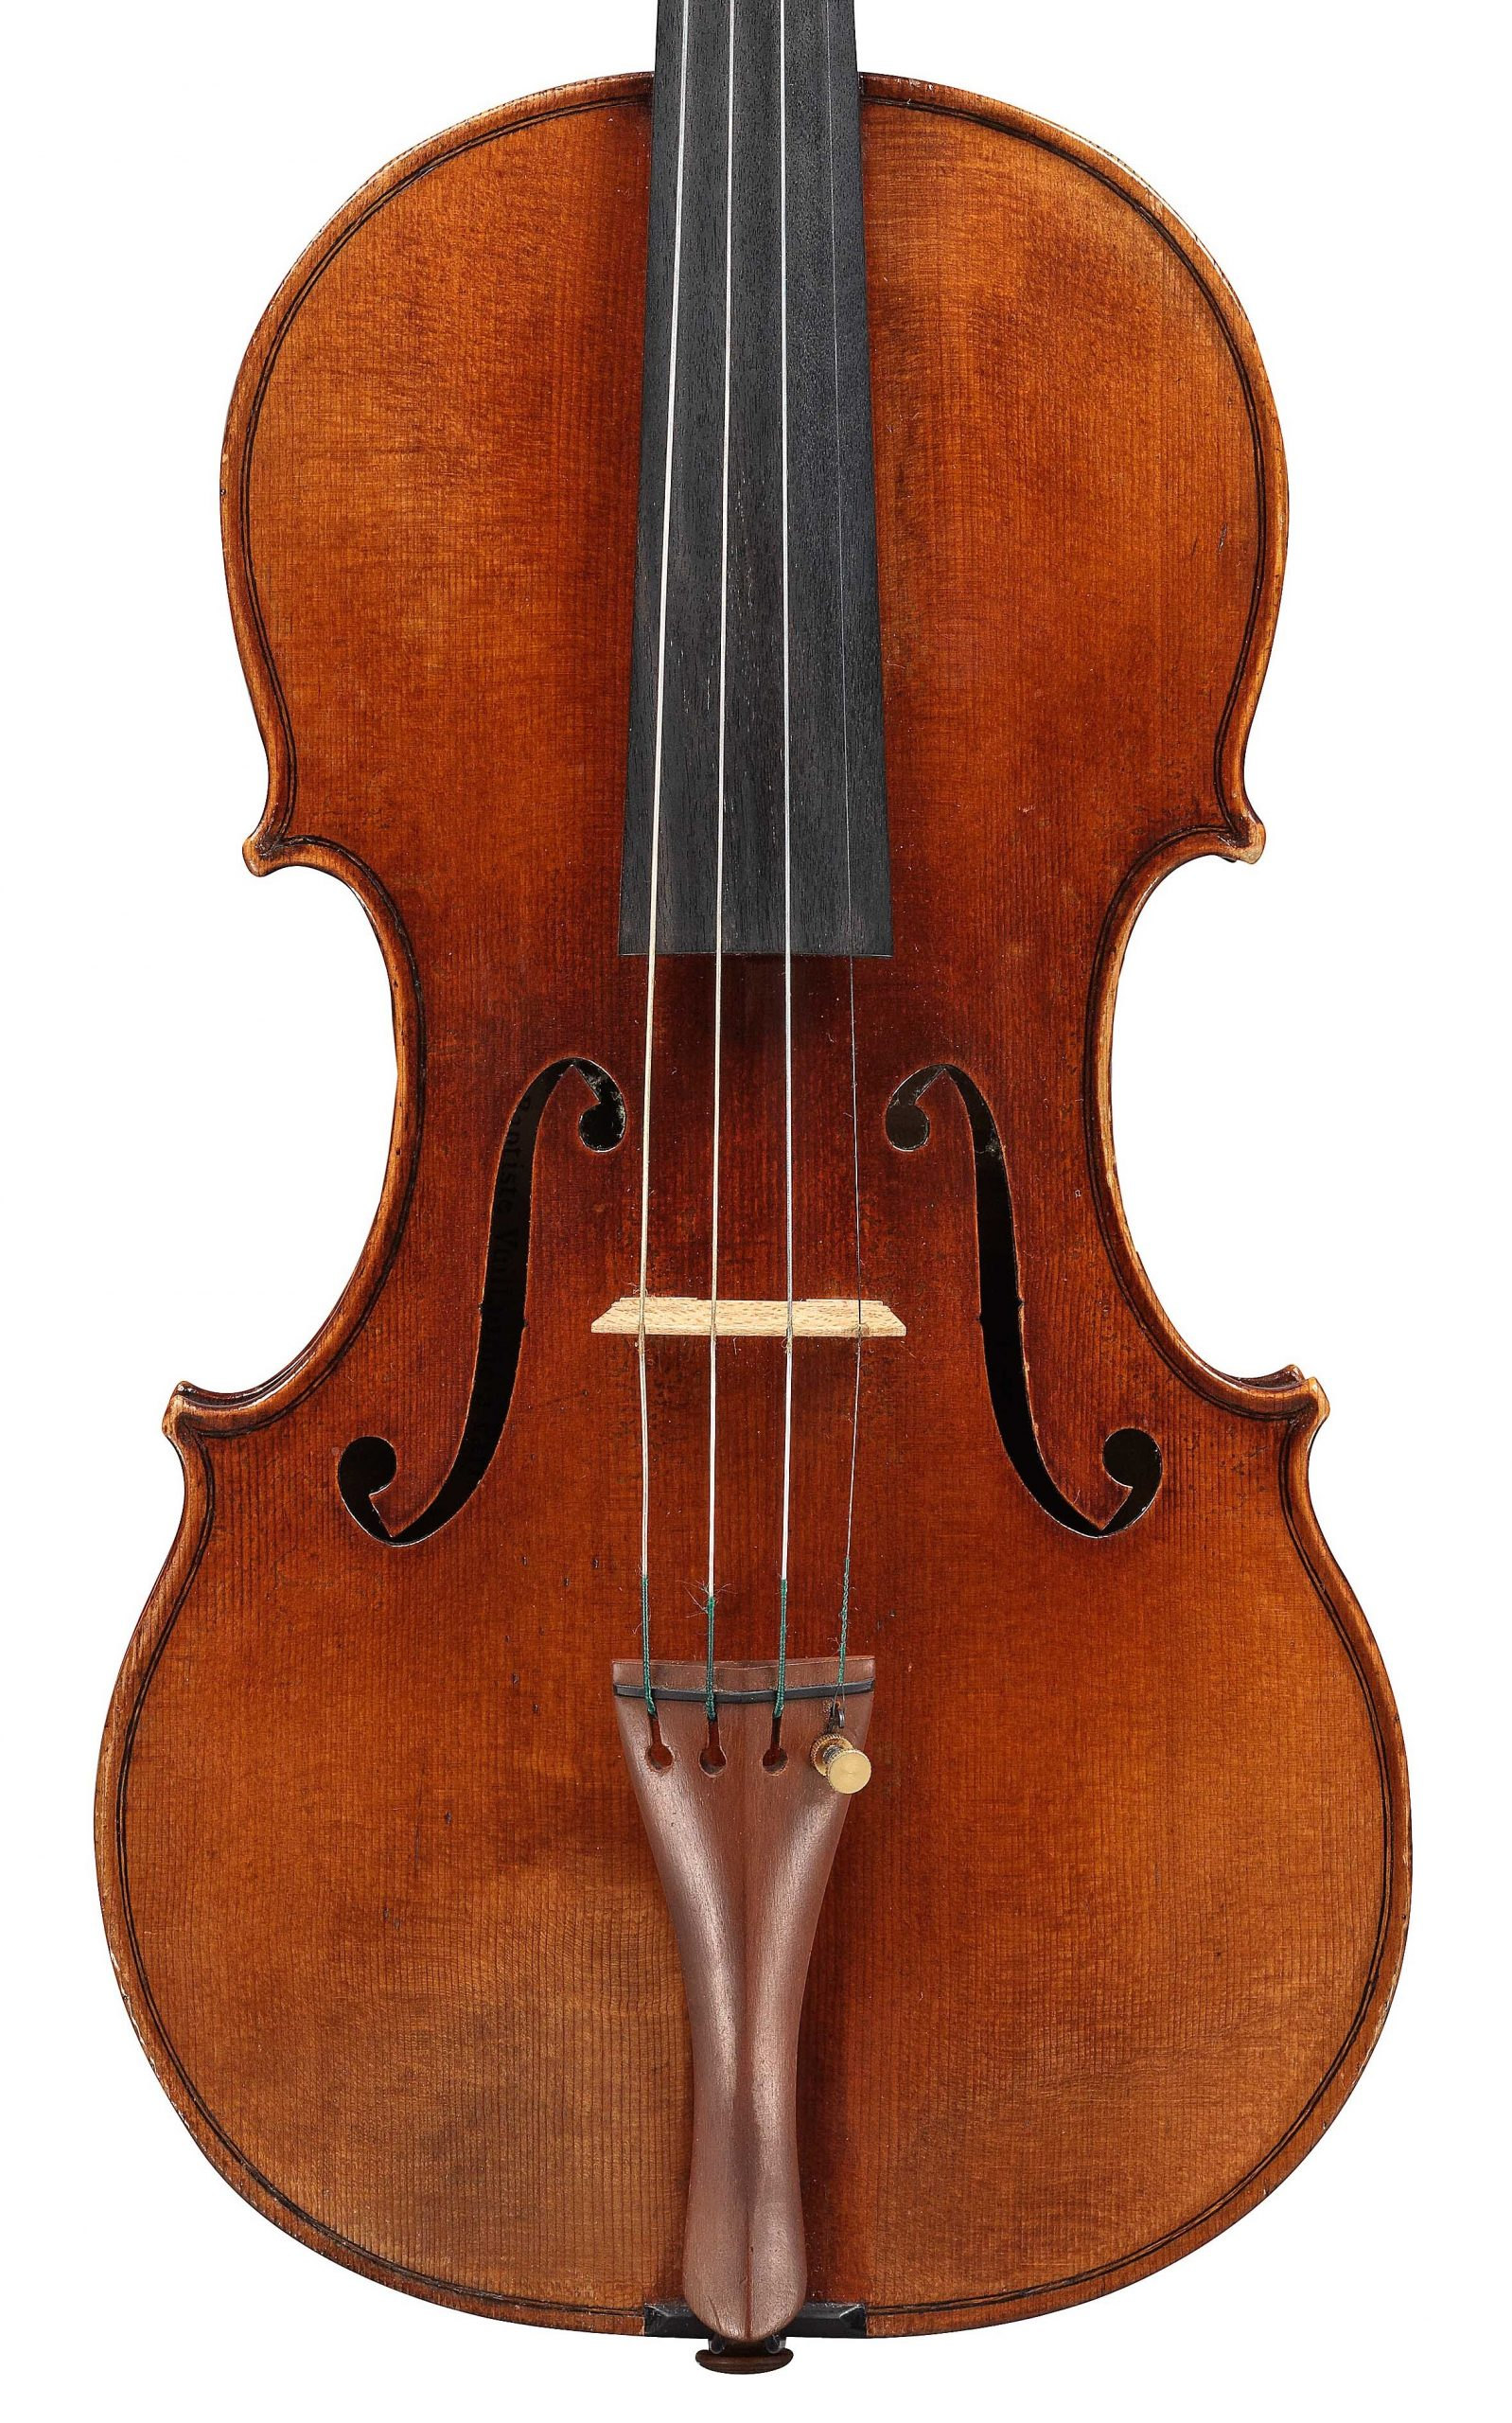 Front of violin by JB Vuillaume, dated 1861, exhibited by Ingles & Hayday at Sotheby's in 2012